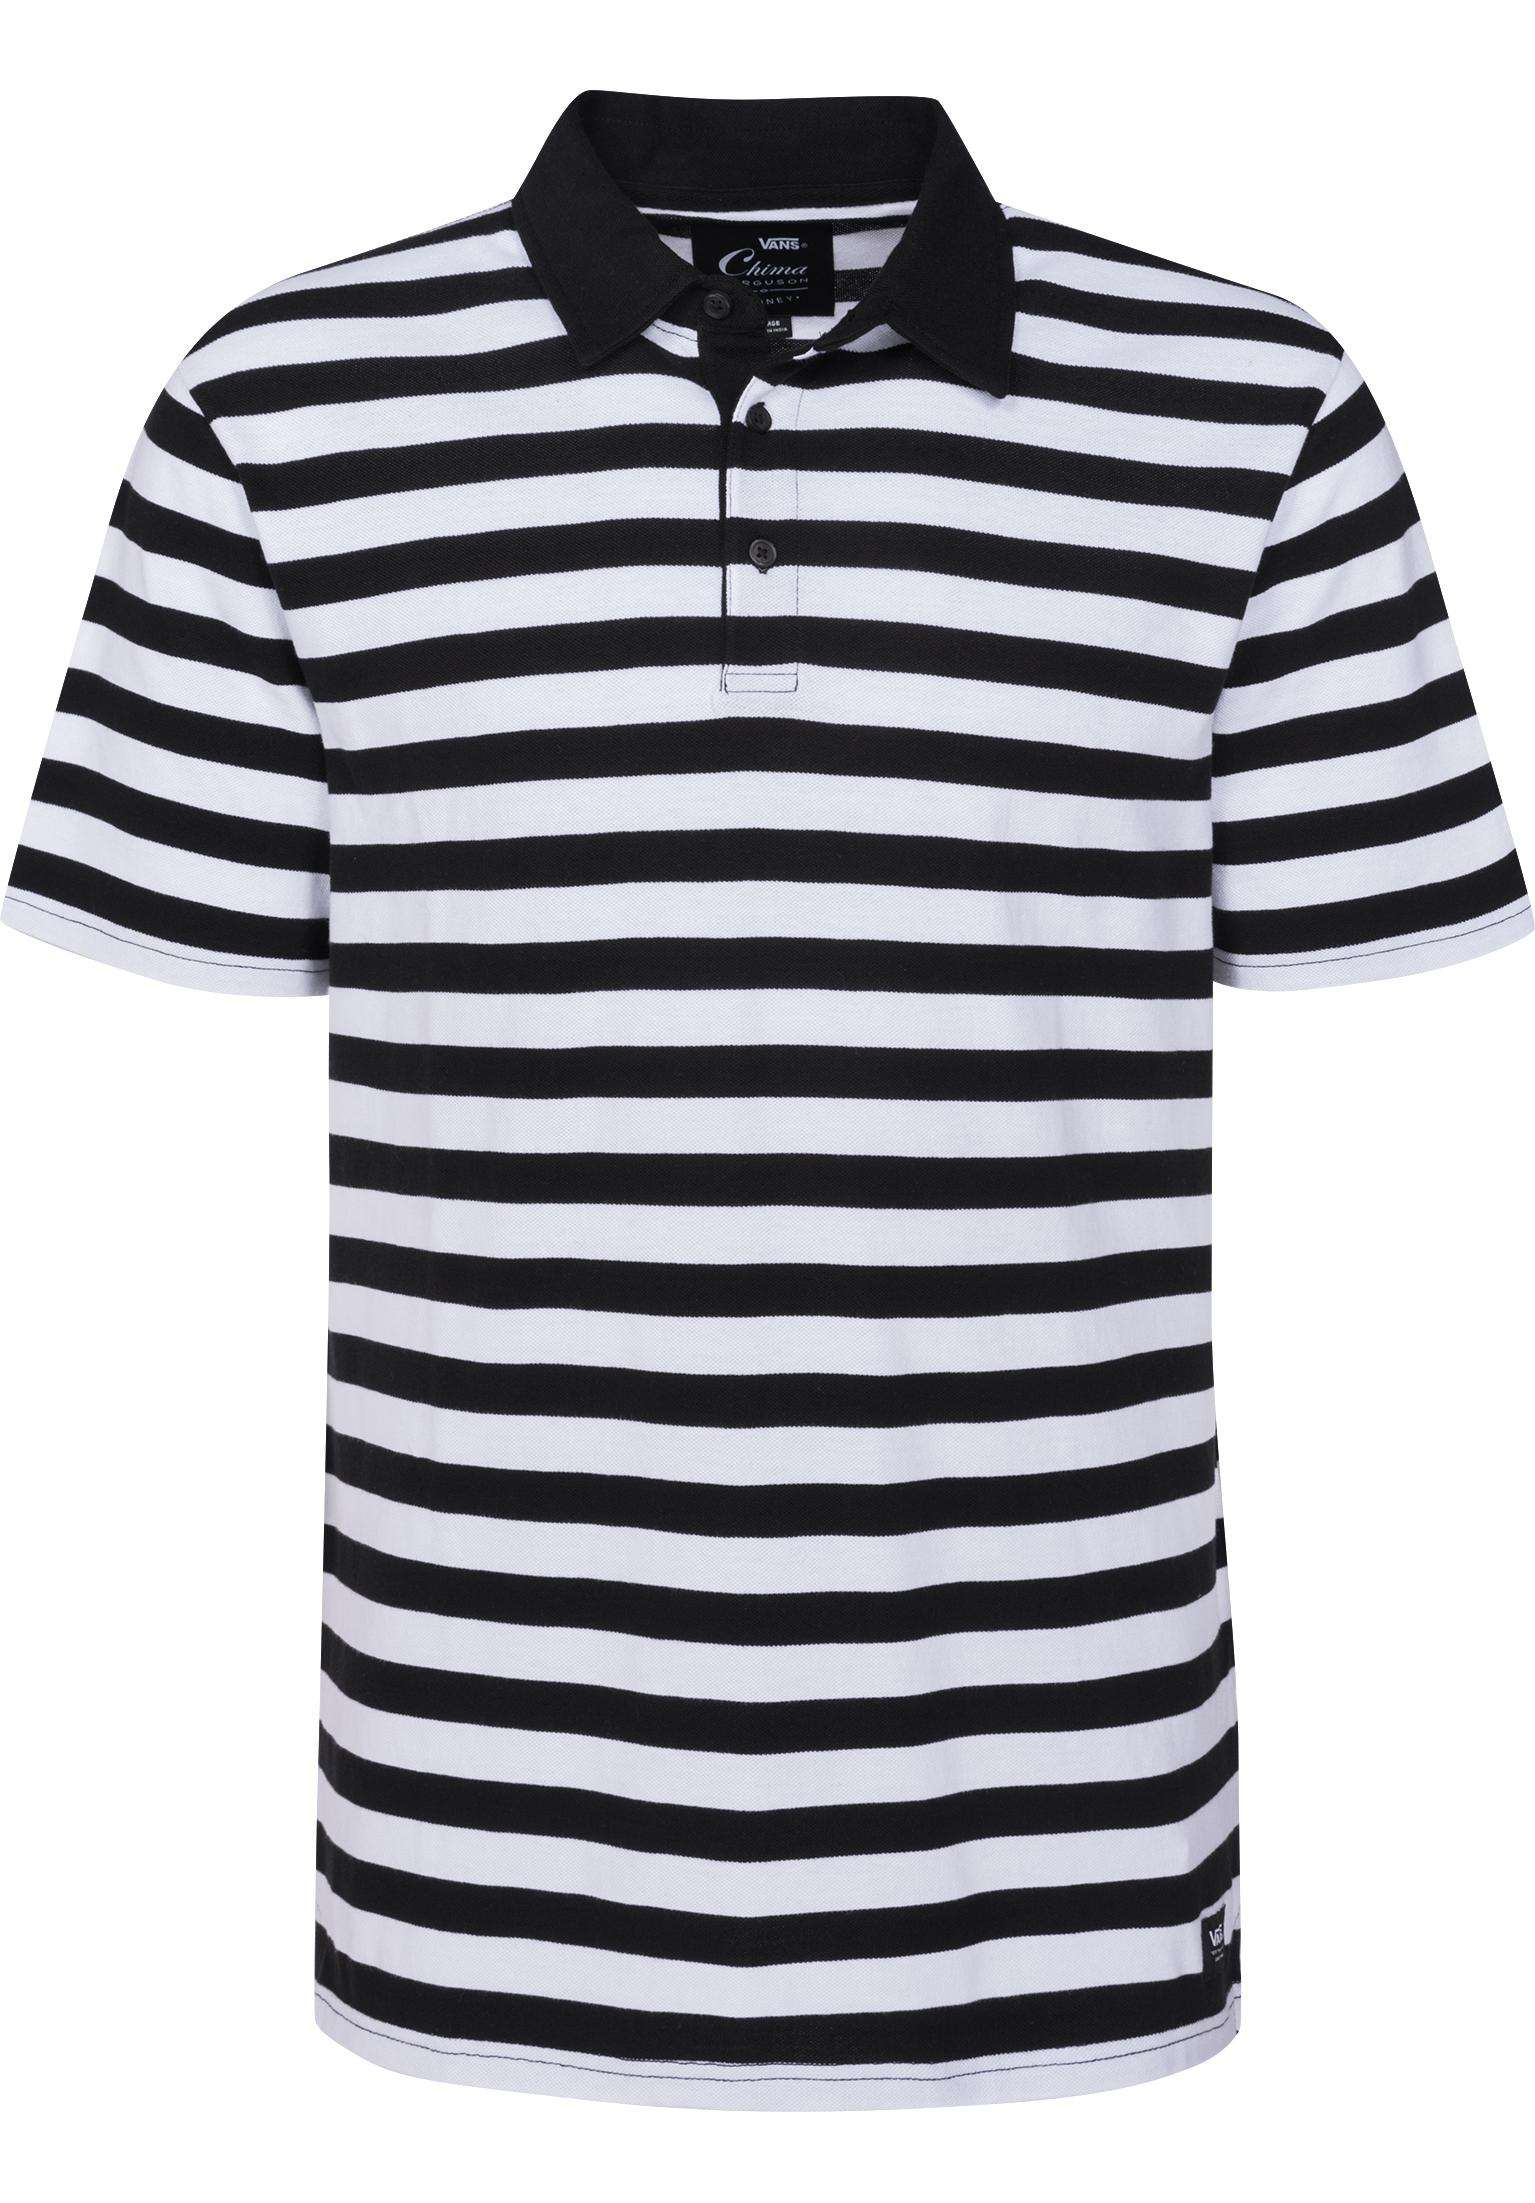 799c955455 Chima Striped Polo Vans Polo Shirts in black-white for Men